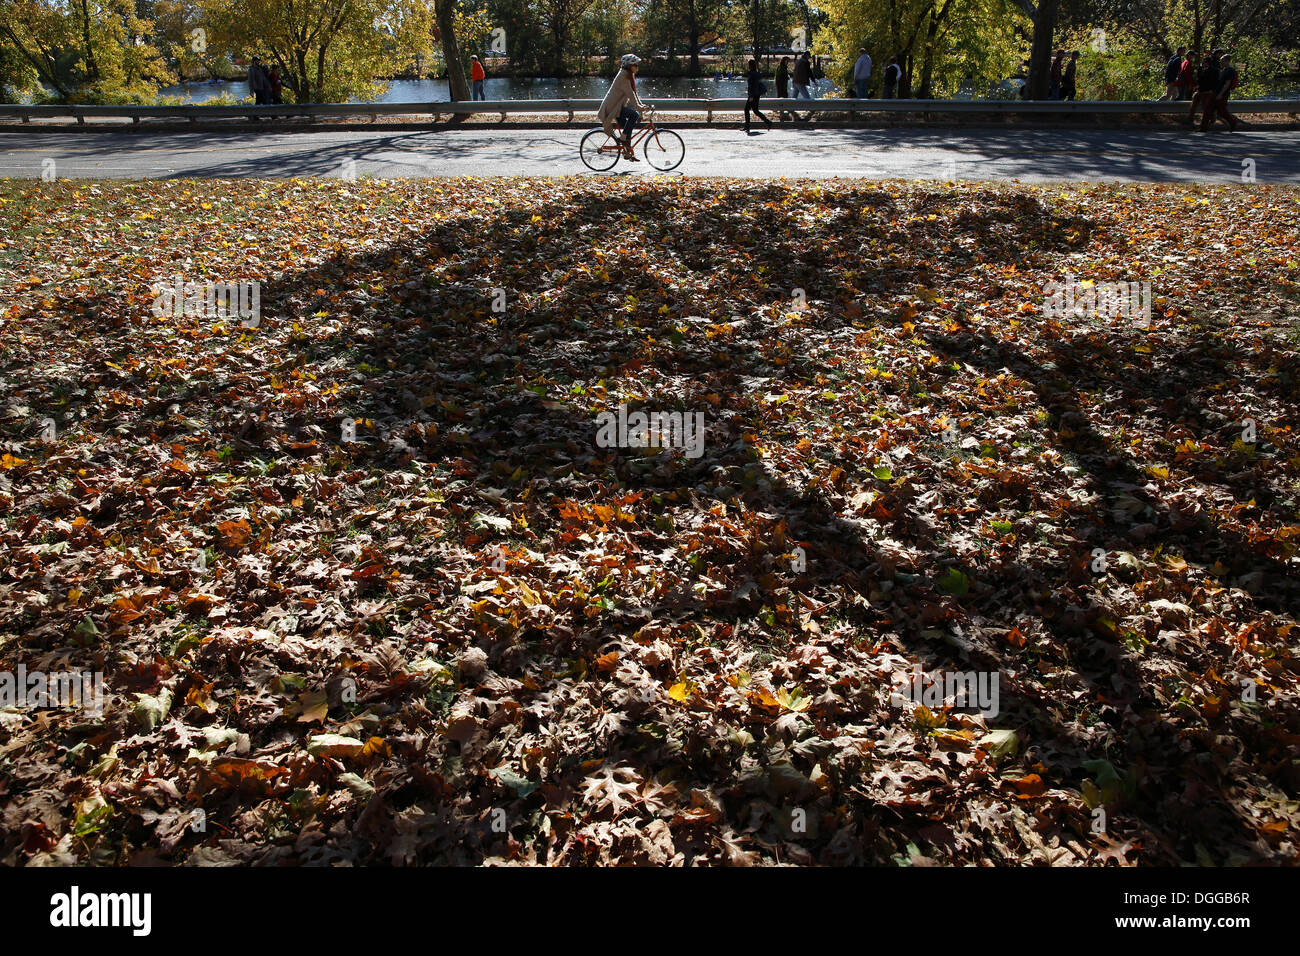 Autumn leaves on the ground and a bicyclist on Memorial Drive, Cambridge, Massachusetts, USA - Stock Image